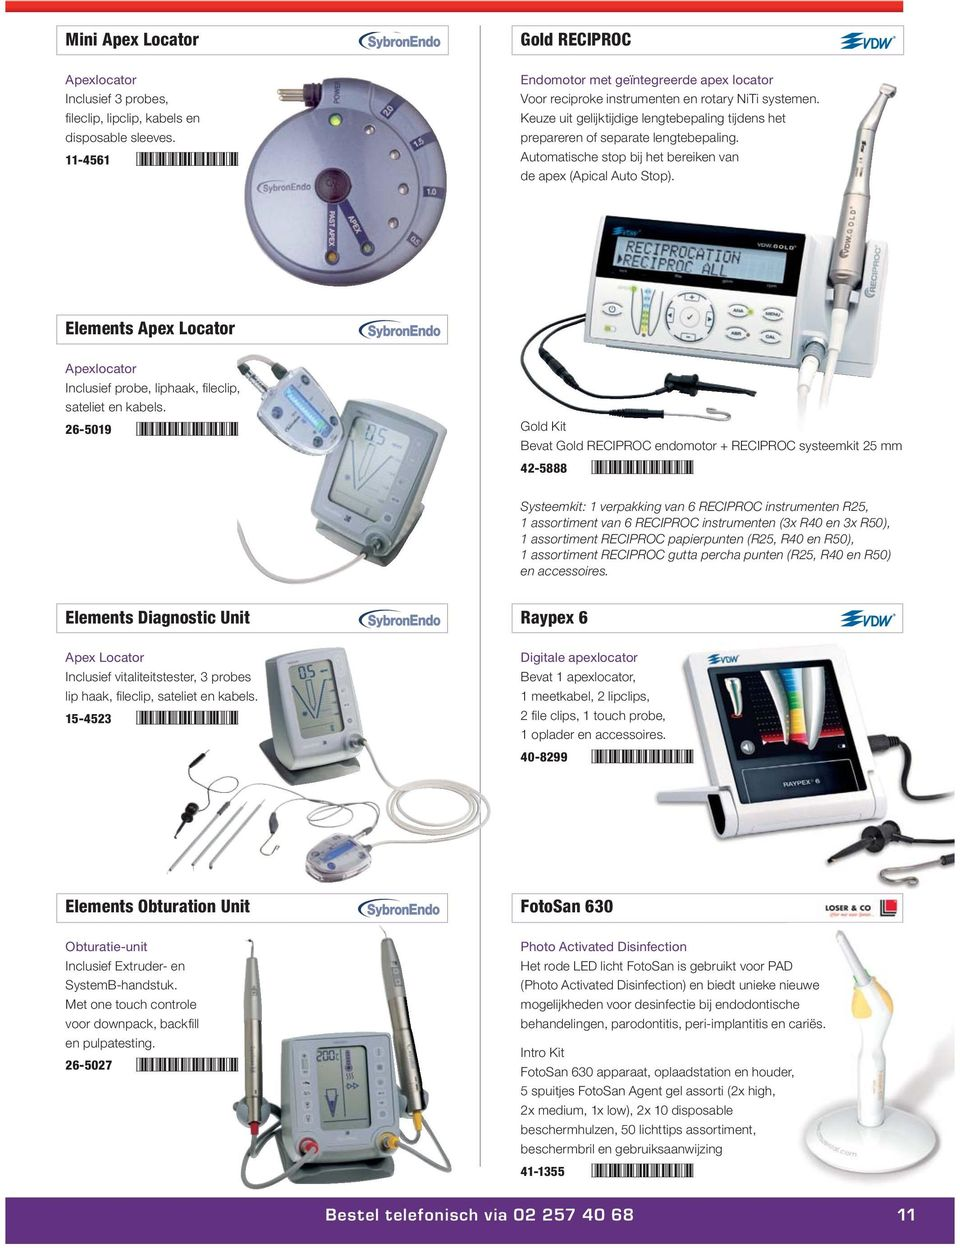 Elements Apex Locator Inclusief probe, liphaak, fi leclip, sateliet en kabels.